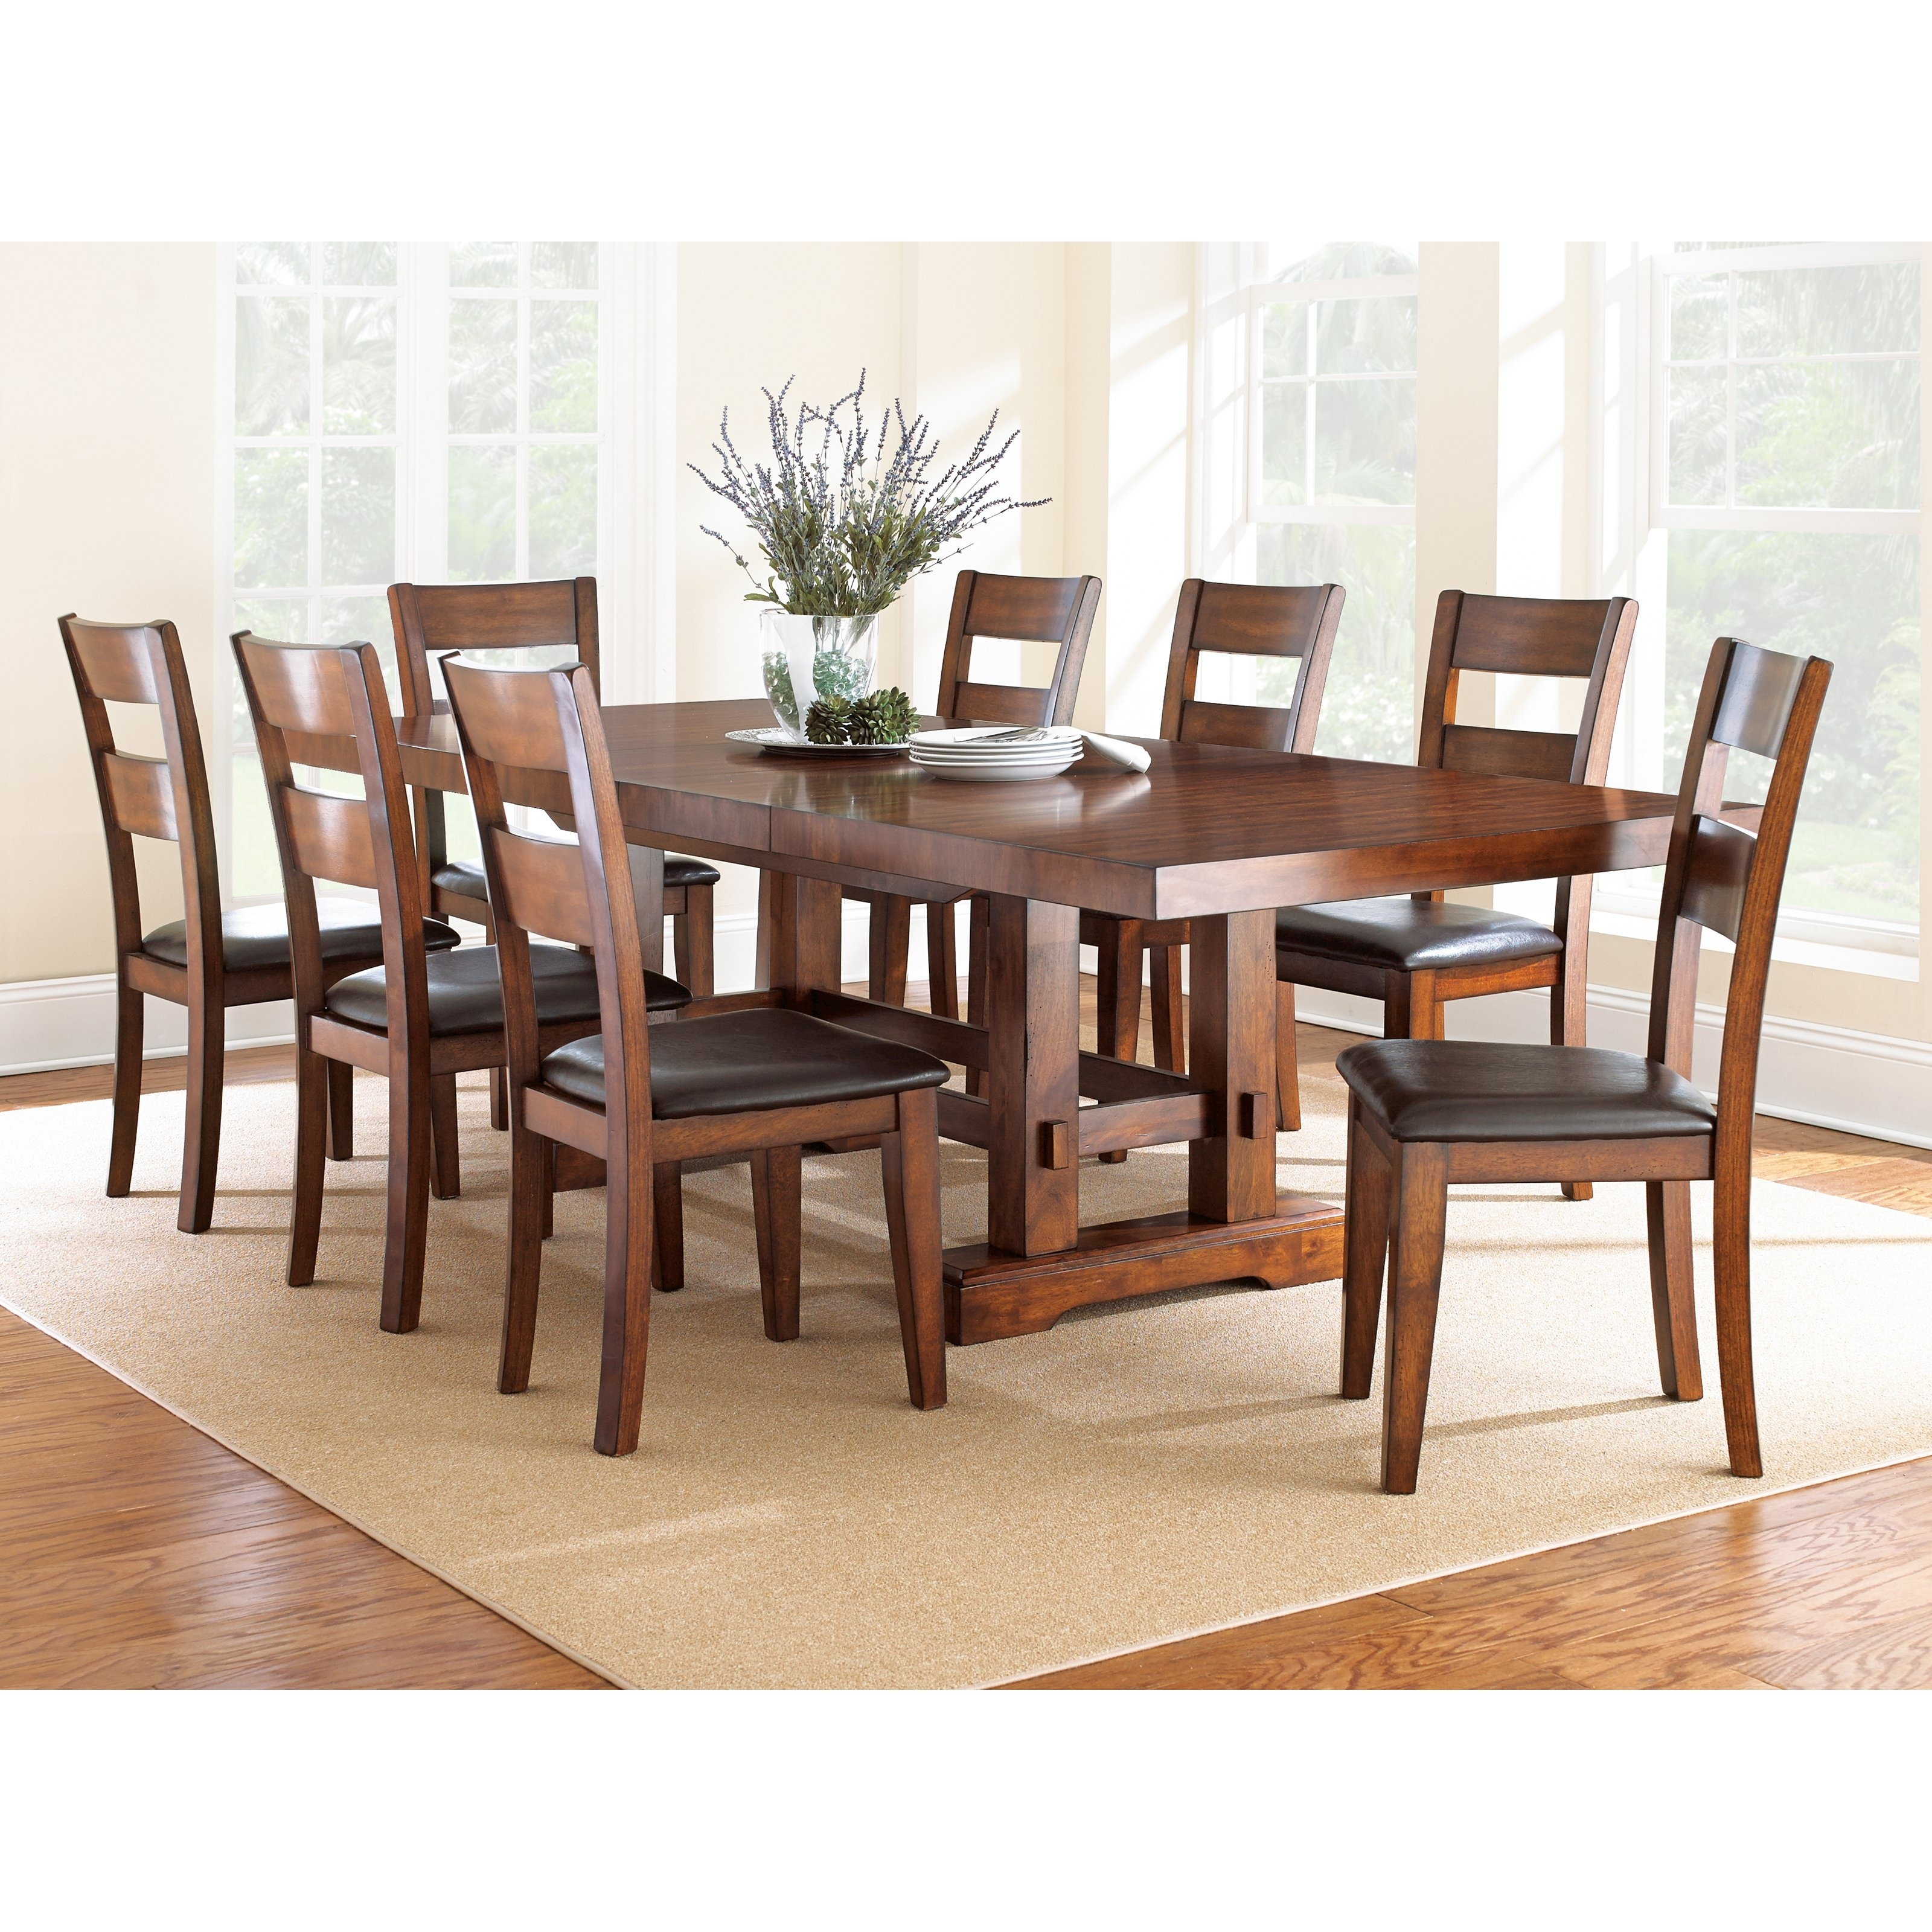 Steve Silver Zappa 9 Piece Dining Table Set Medium Matching Bar Throughout Well Known Dining Tables And 8 Chairs Sets (View 8 of 25)